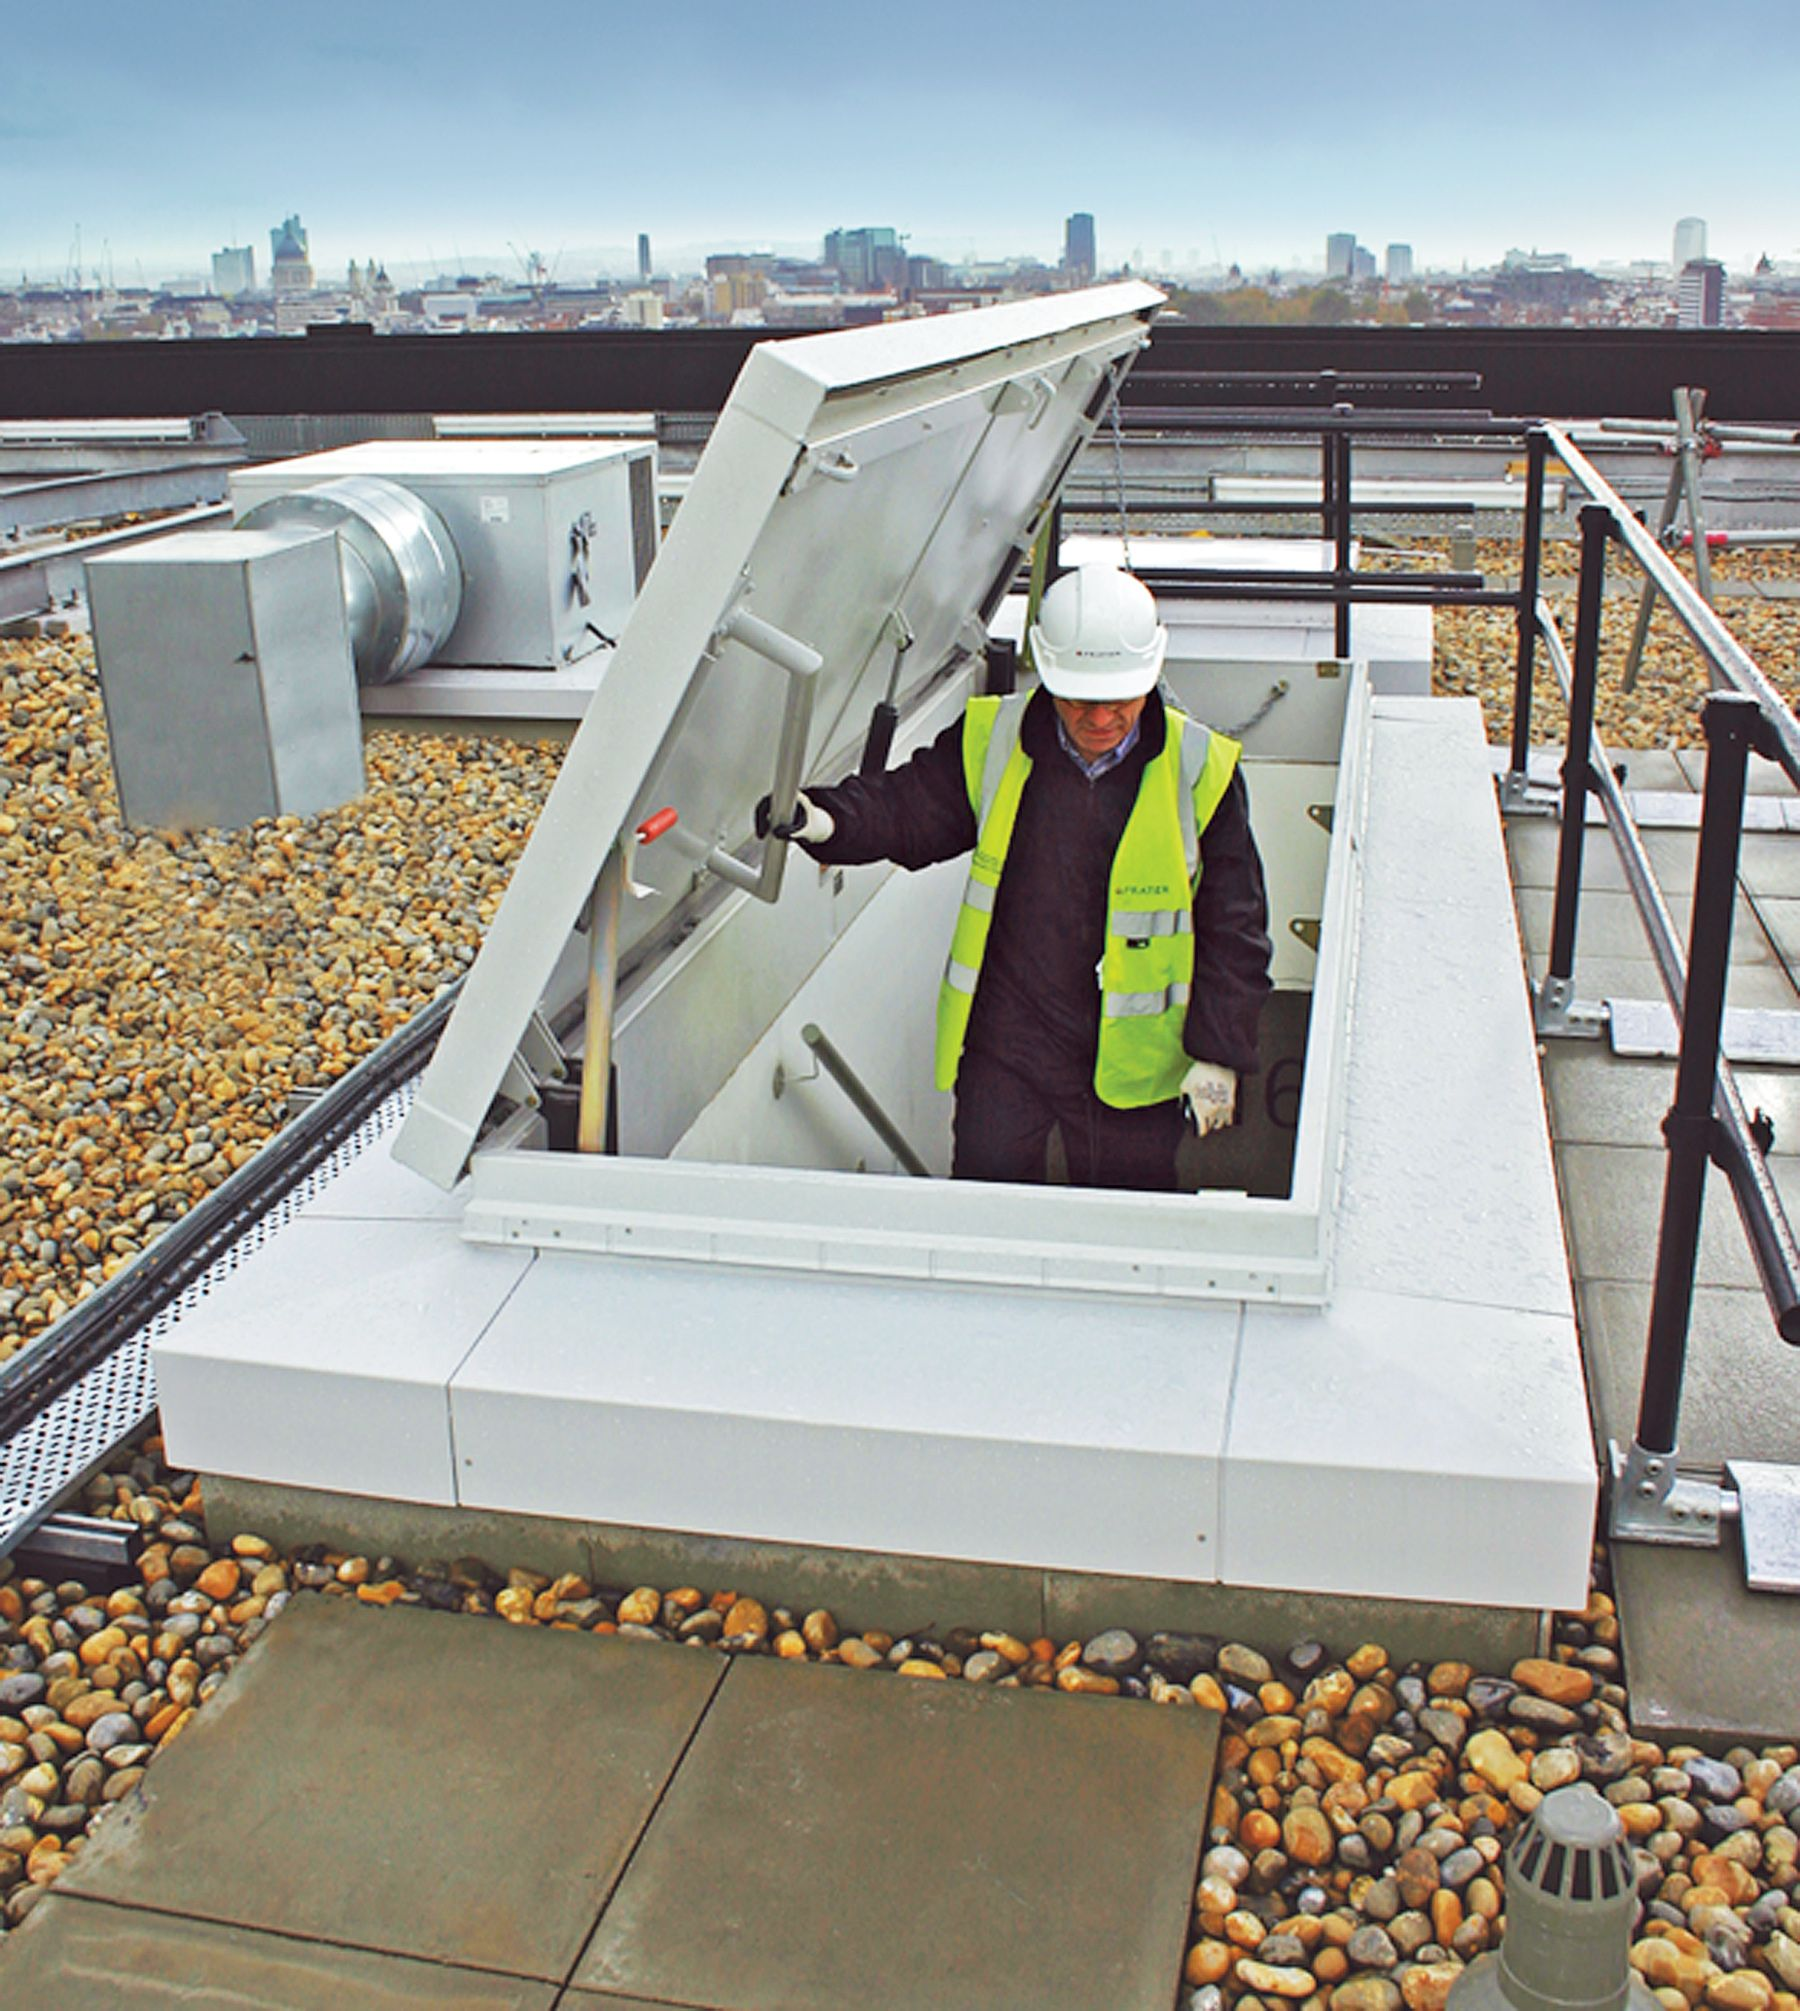 Commercial Roof Hatches Provide Safe And Convenient Access